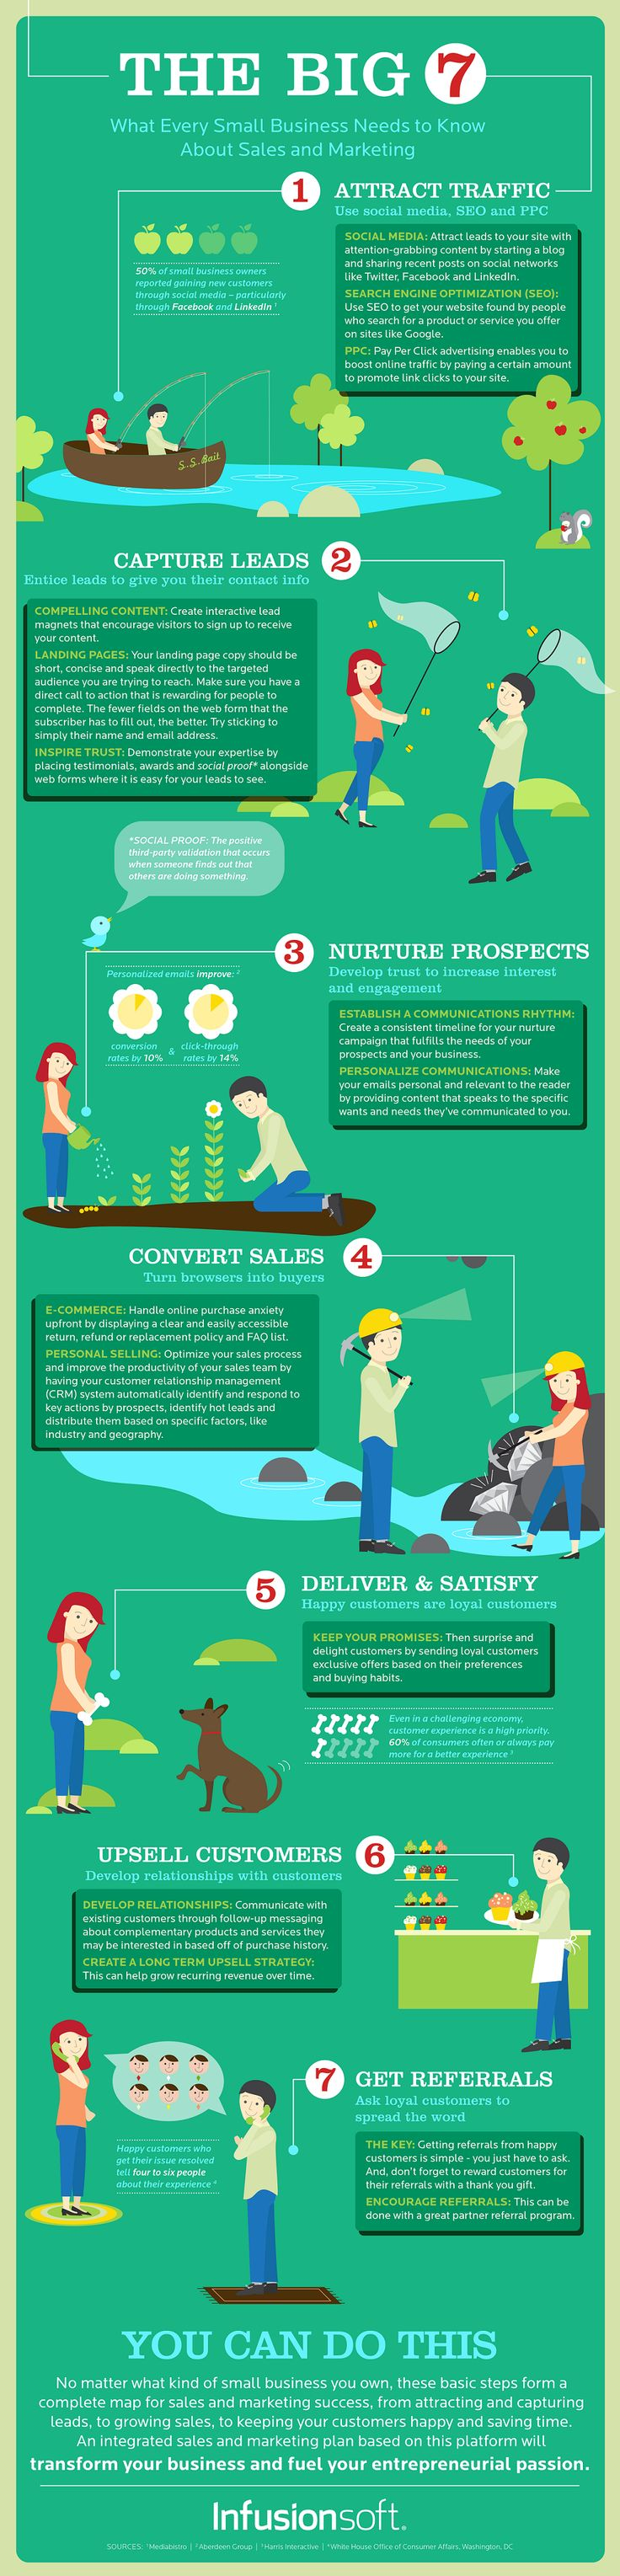 The Big 7 - What Every Small Business Needs To Know About Sales And Marketing #infographic